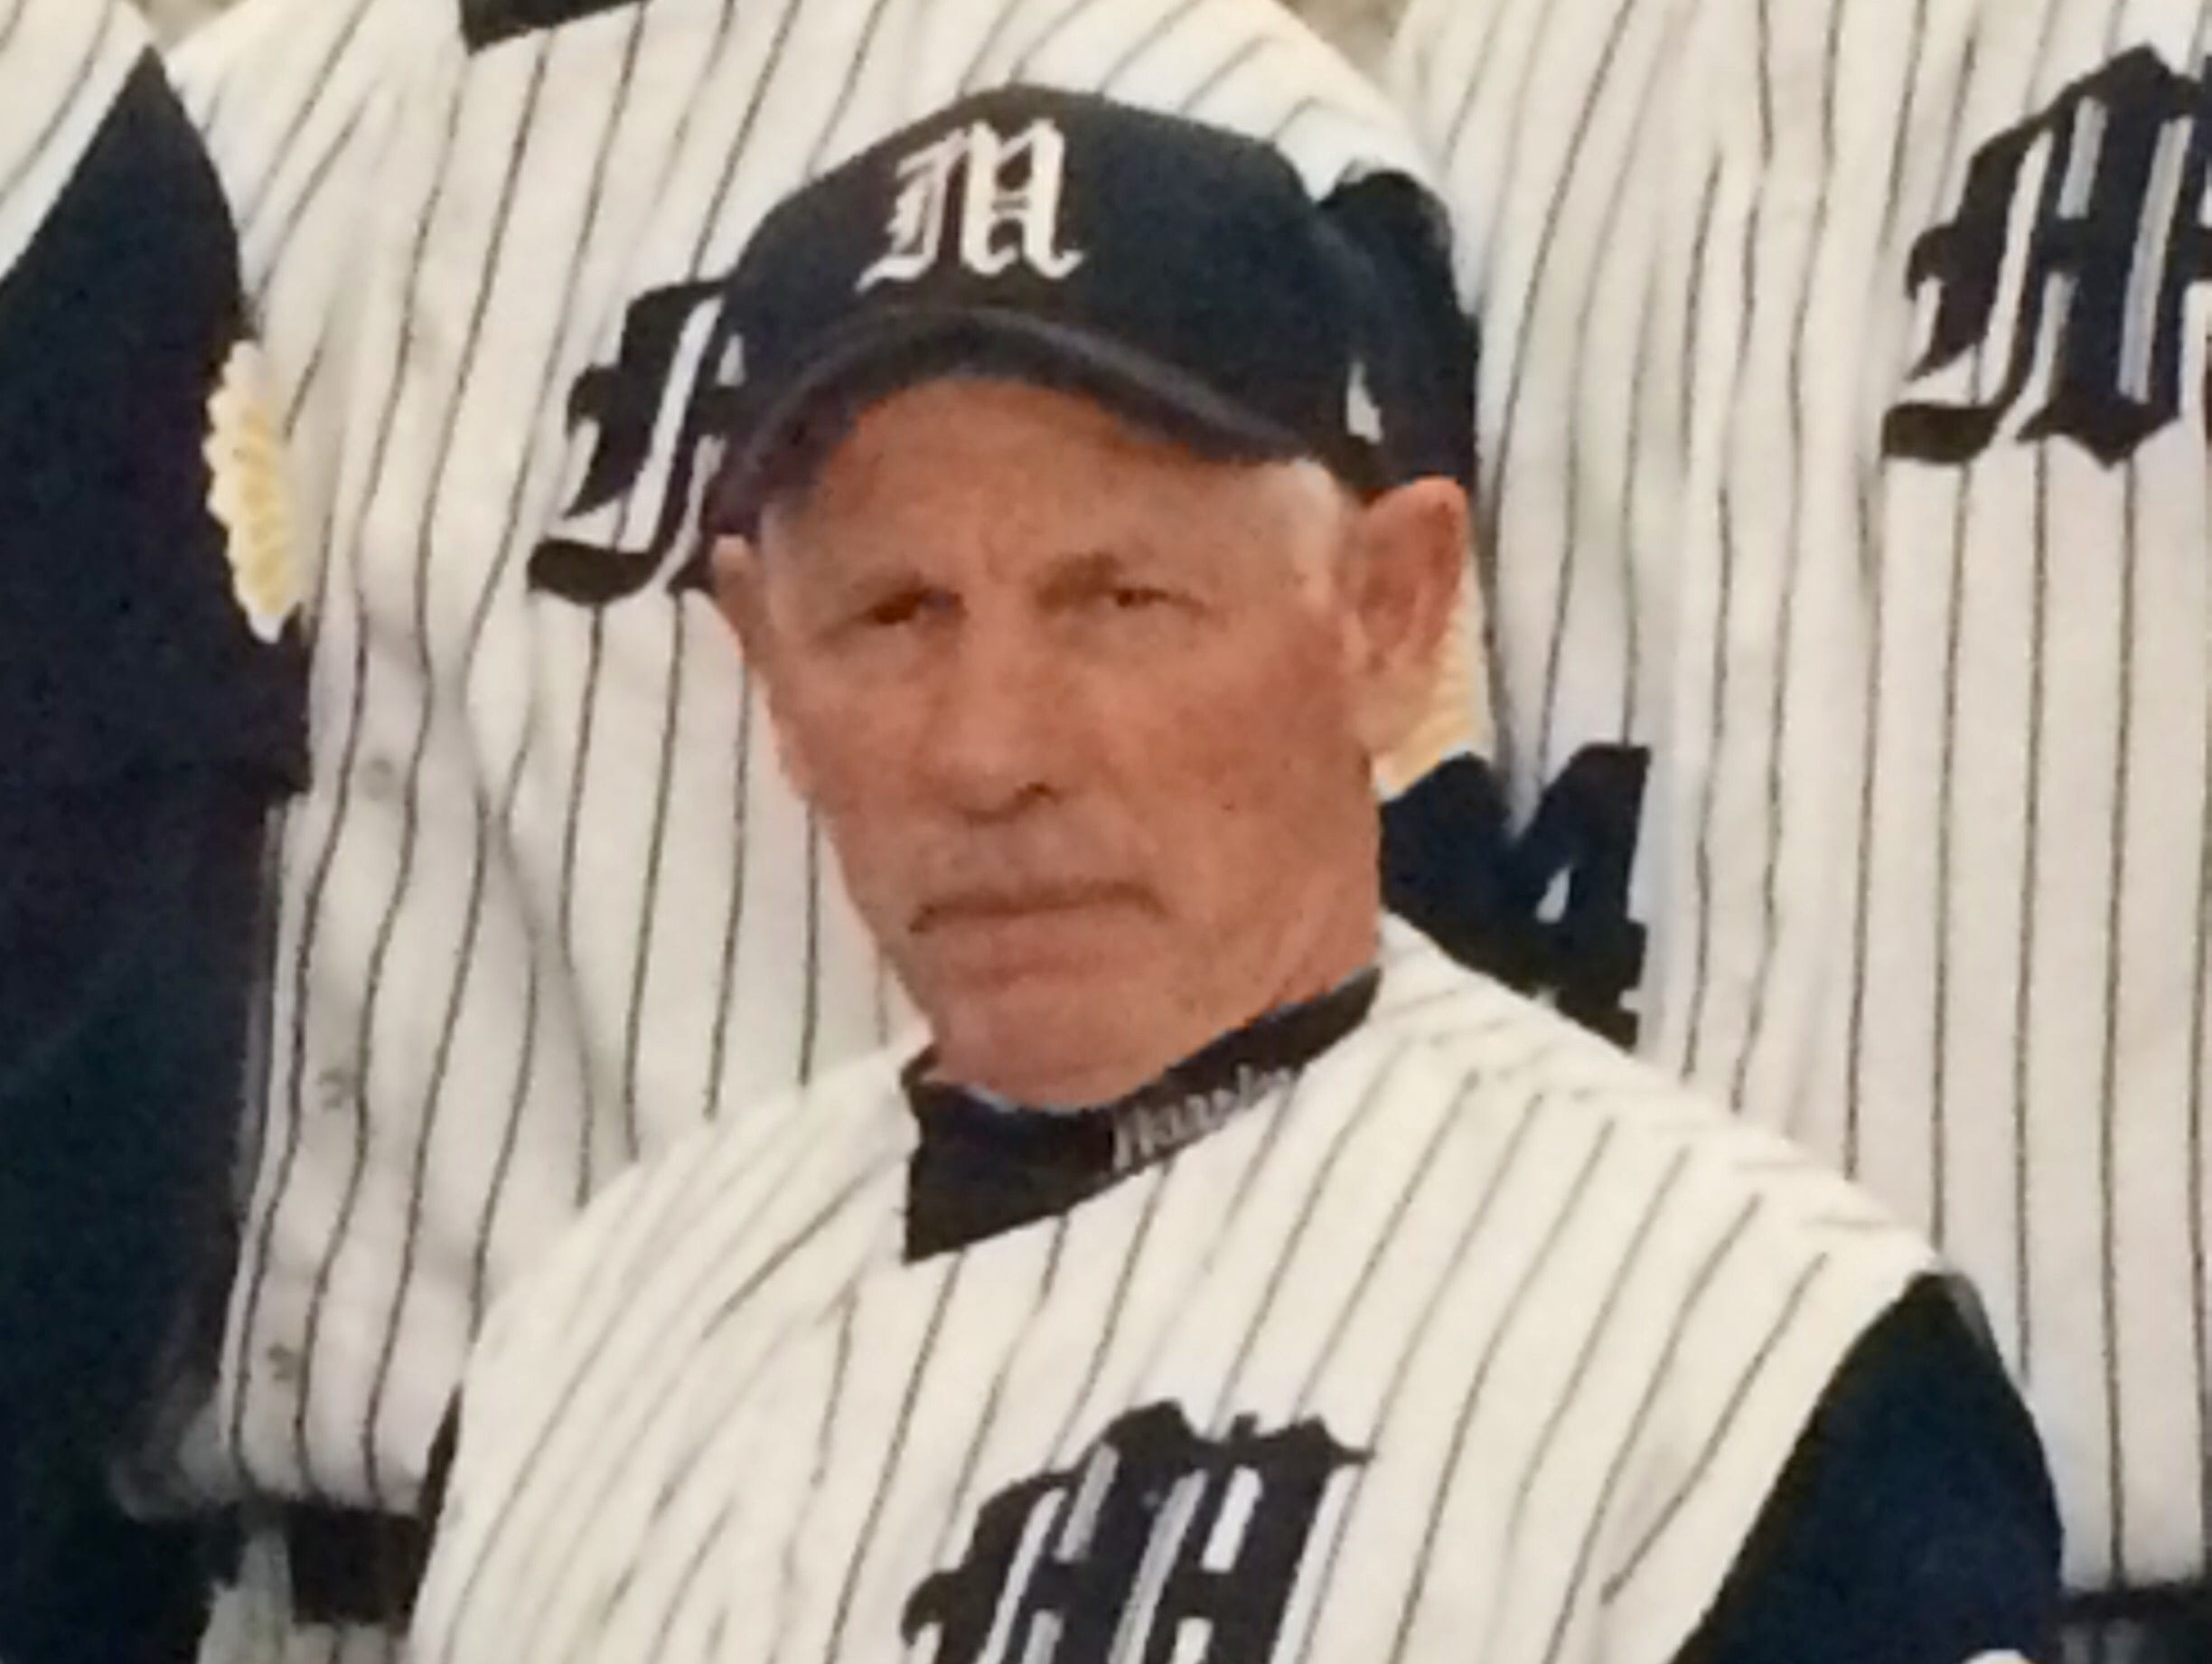 Longtime Meridian High School baseball coach Mo Brooks.